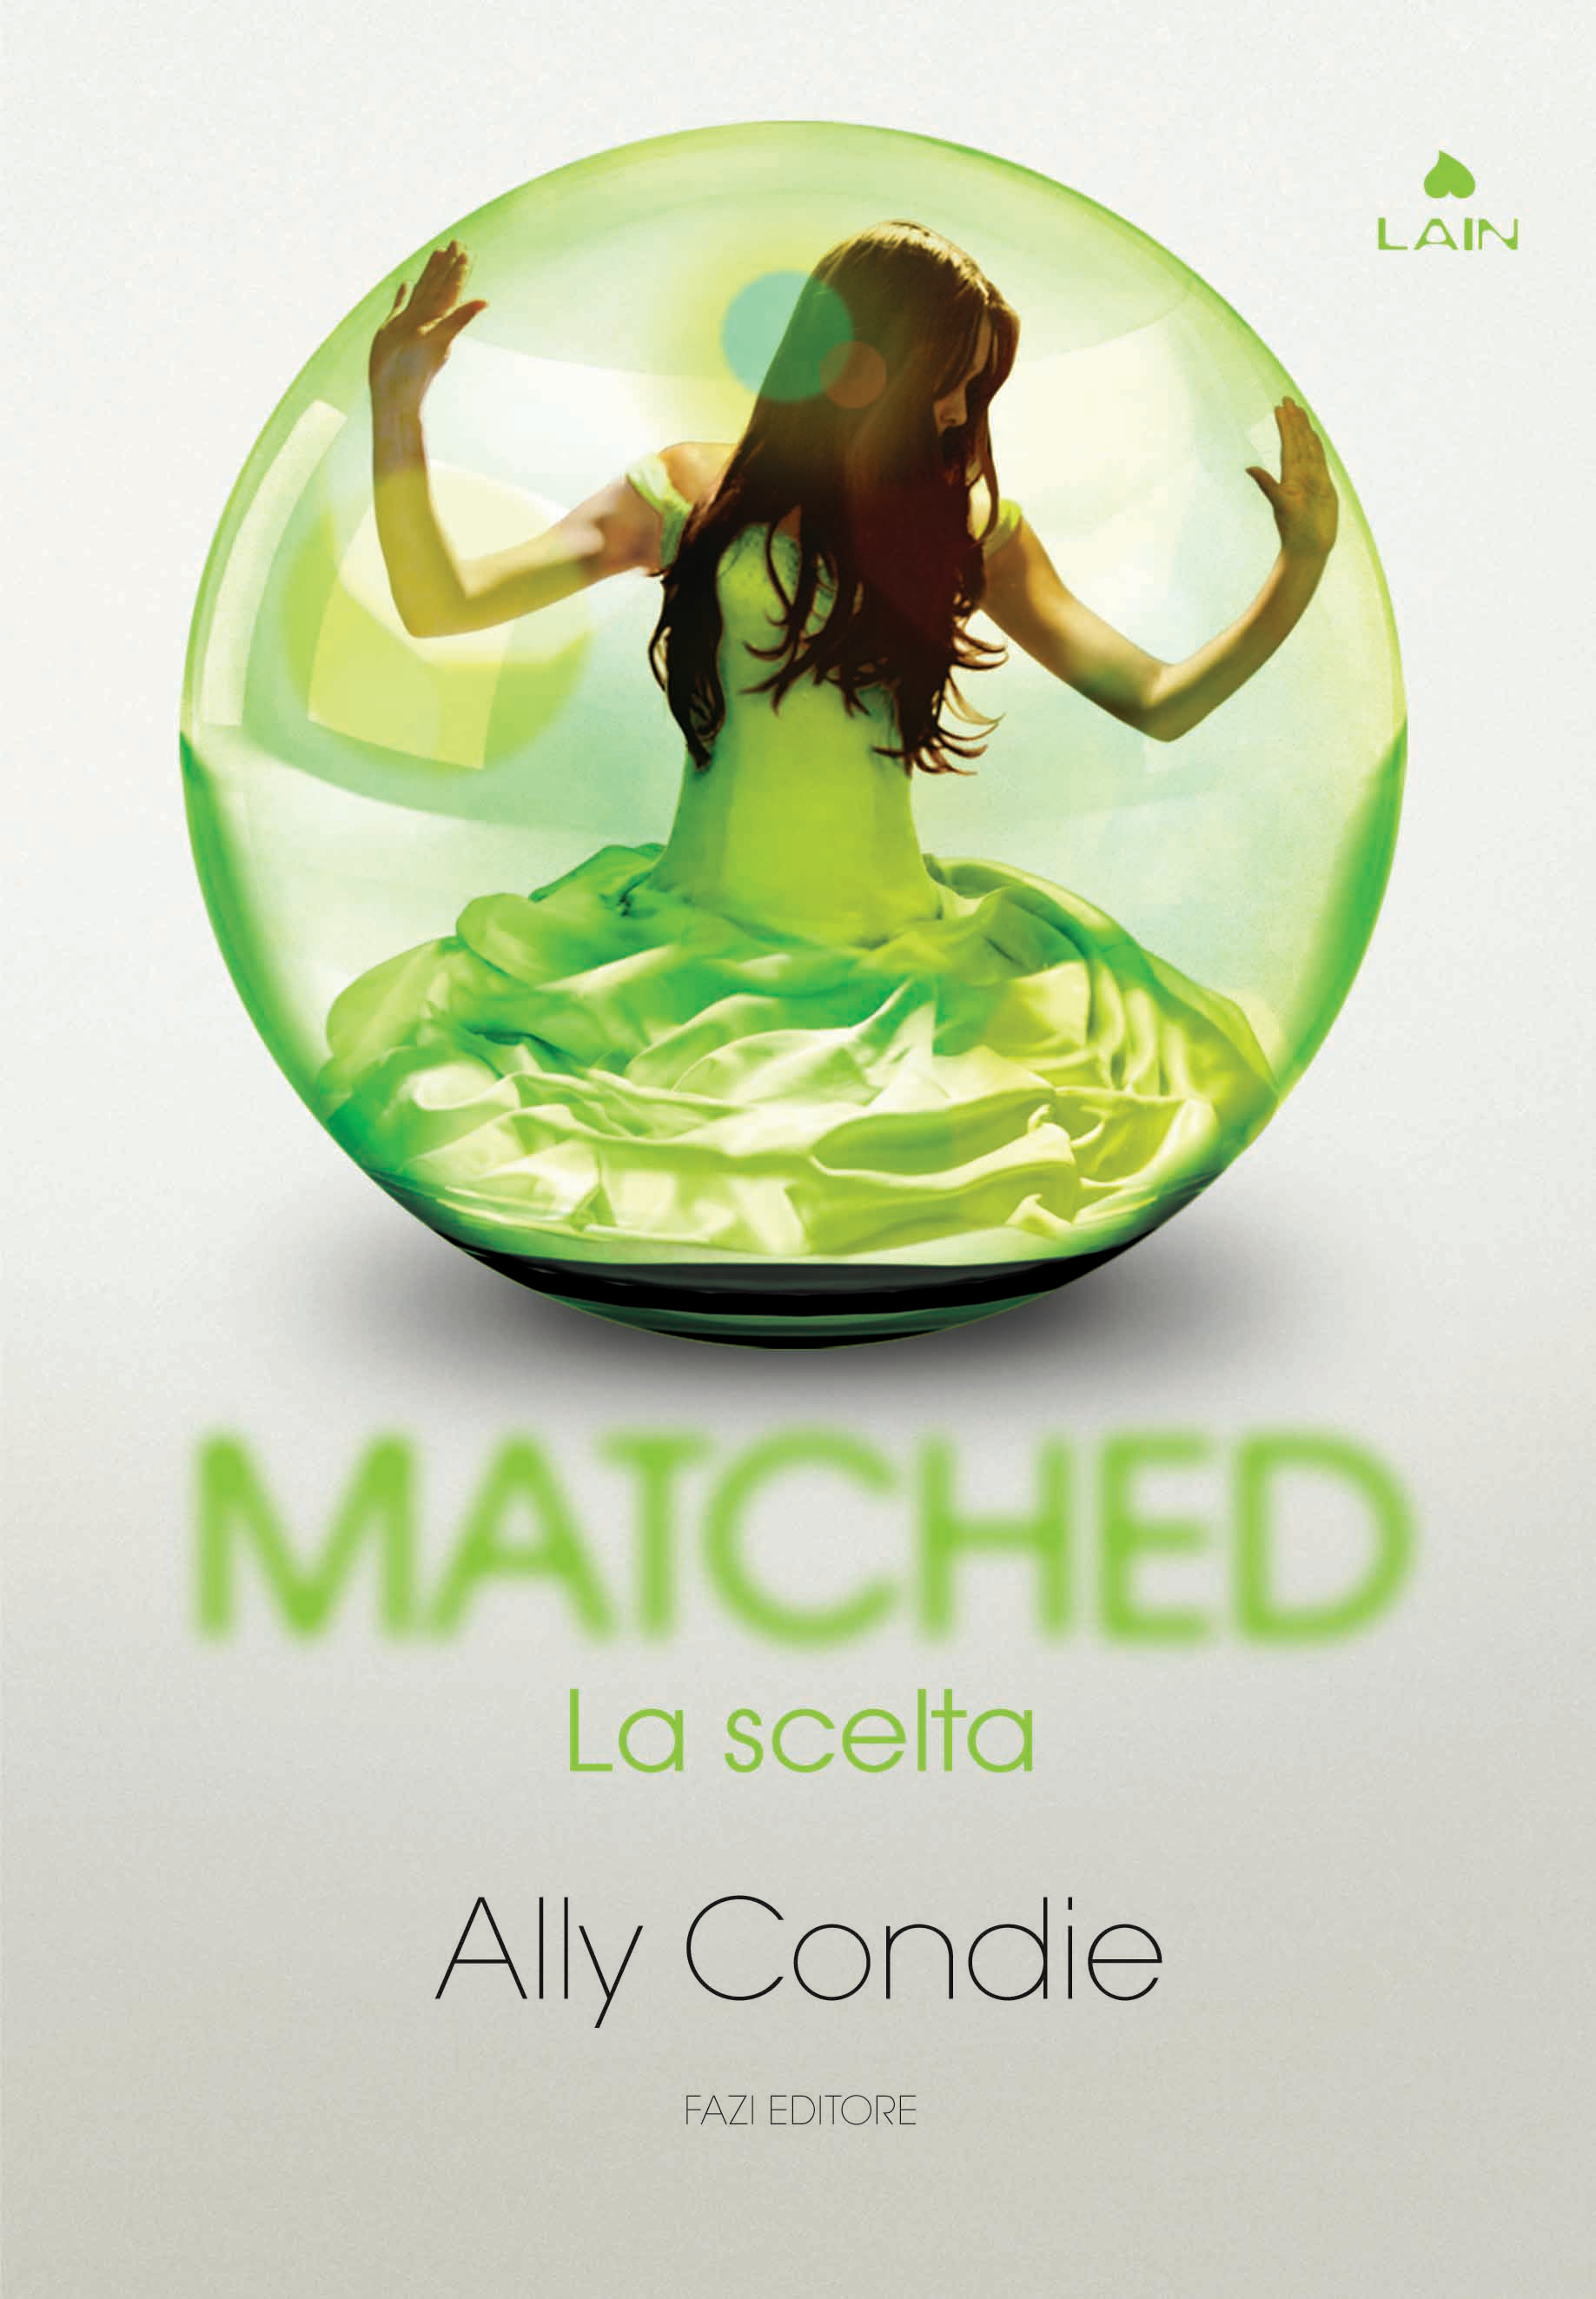 http://www.amazon.it/Matched-scelta-Ally-Condie/dp/887625160X/ref=sr_1_1_twi_2_har?s=books&ie=UTF8&qid=1435750708&sr=1-1&keywords=matched